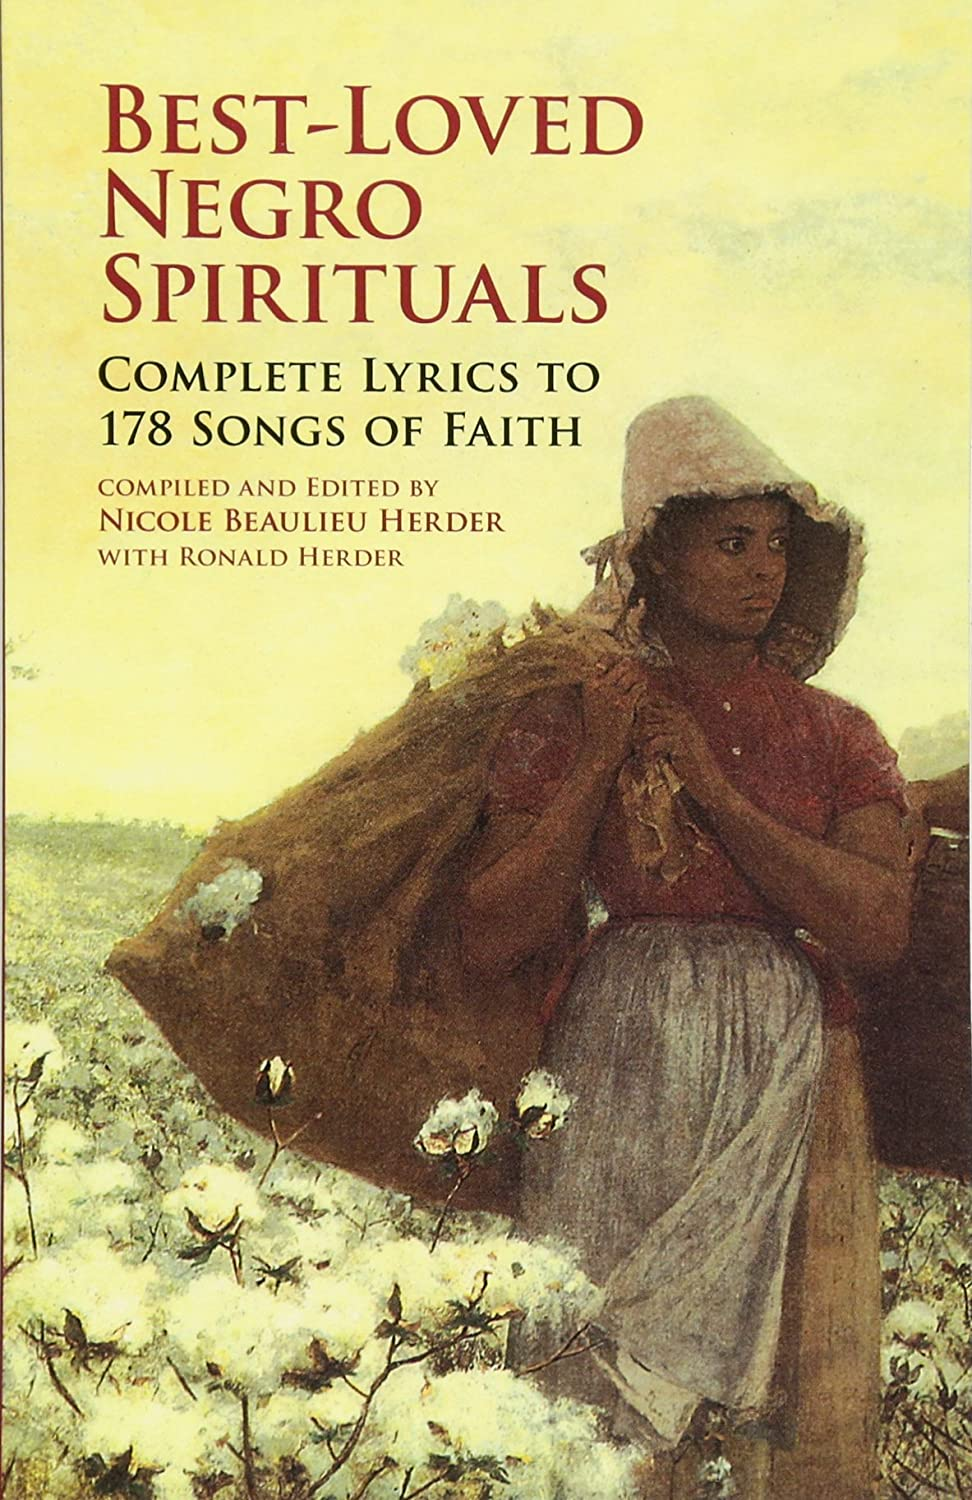 Best-Loved Negro Spirituals Complete Lyrics to 178 Songs of Faith: Complete Lyrics to 178 Songs of Faith Paul T. Kwami Nicole Beaulieu Herder Ronald Herder Dover Pubns